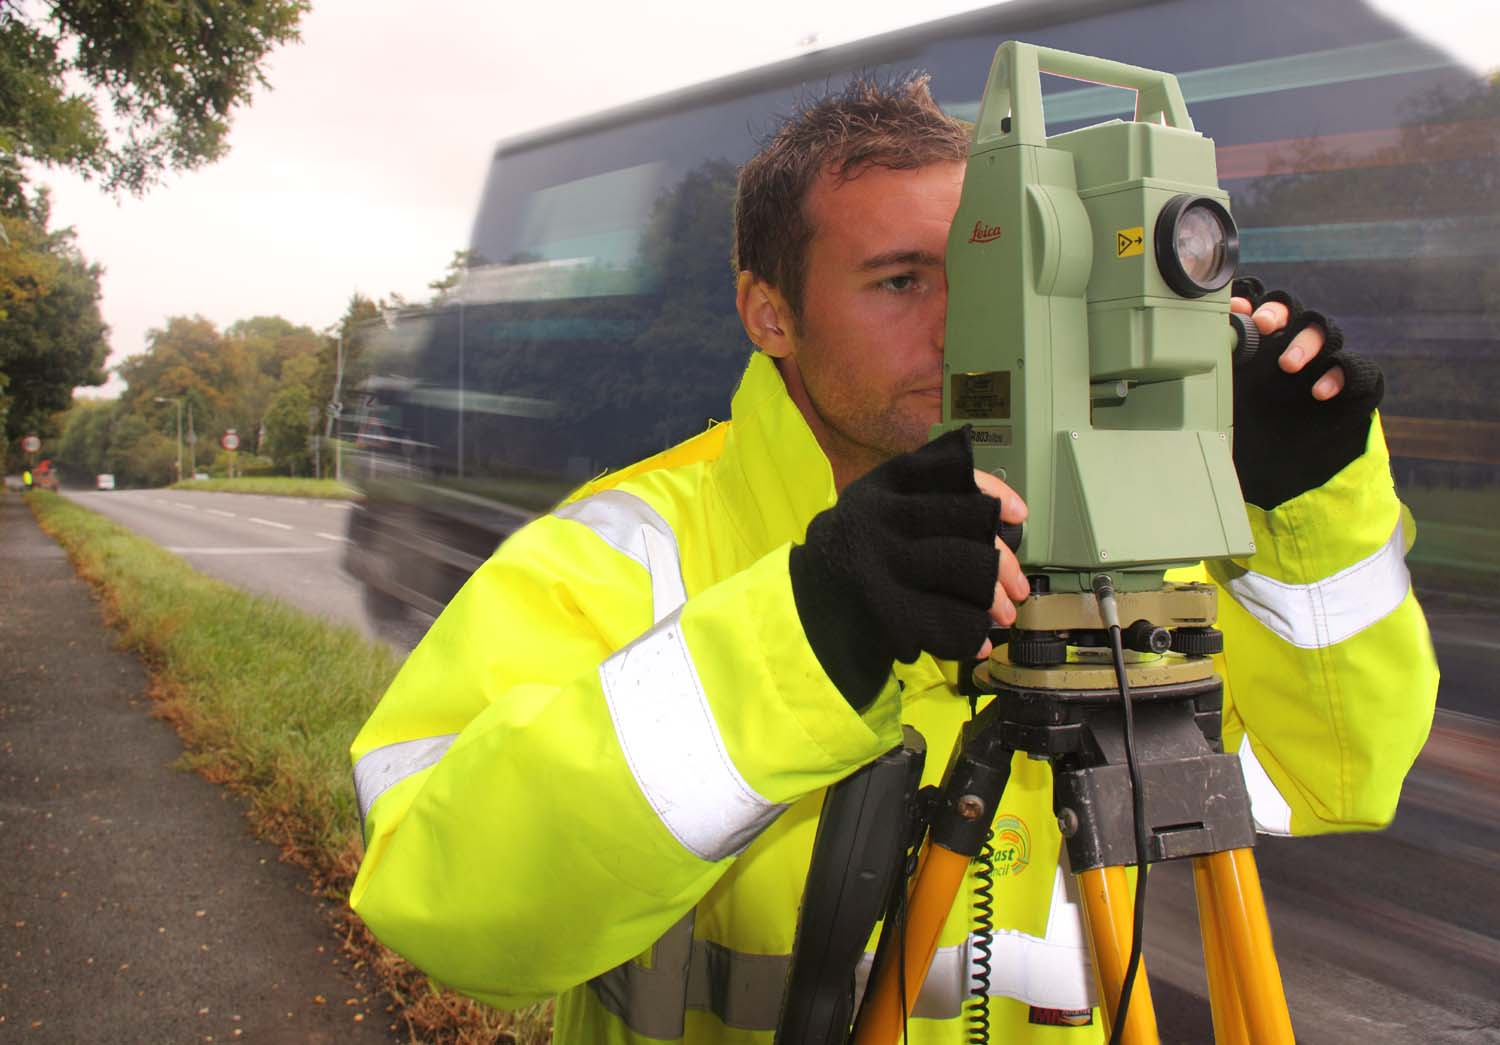 Cheshire,West,Chester,Local,authority,Council,Road,Surveyor,using,Leica,803,Ultra,A556,Peover,UK,England,yellow,jacket,surveying,CWAC,local authority,MBC,at work,work,working,workers,worker,busy,person,people,professional,qualified,face,head,faces,operative,expert,ARICS,ARIC,365days,tonysmith,tony,smith,HOT PIX,tony smith photography,tdktony,tdk,tdktonysmith